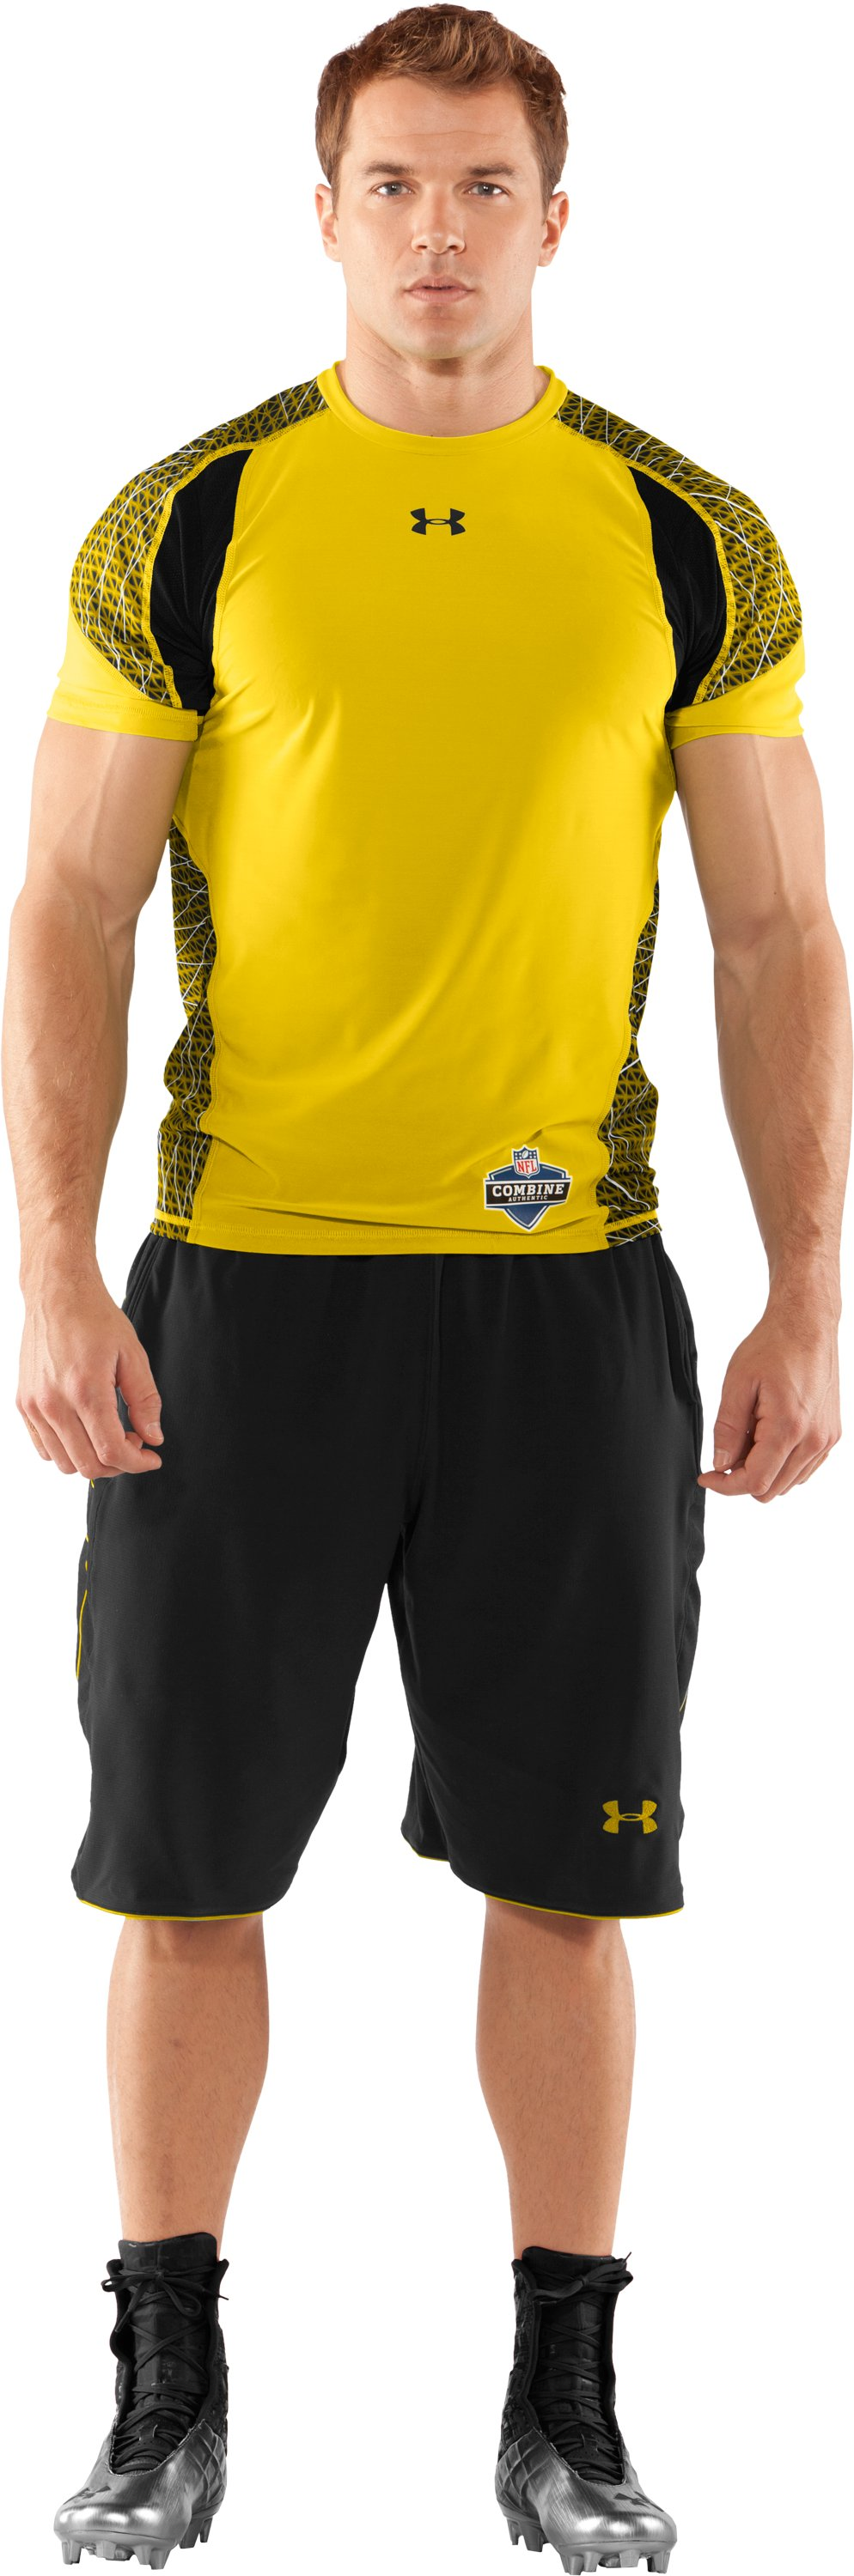 Men's NFL Combine Authentic Warp Speed Fitted Short Sleeve, Taxi, zoomed image